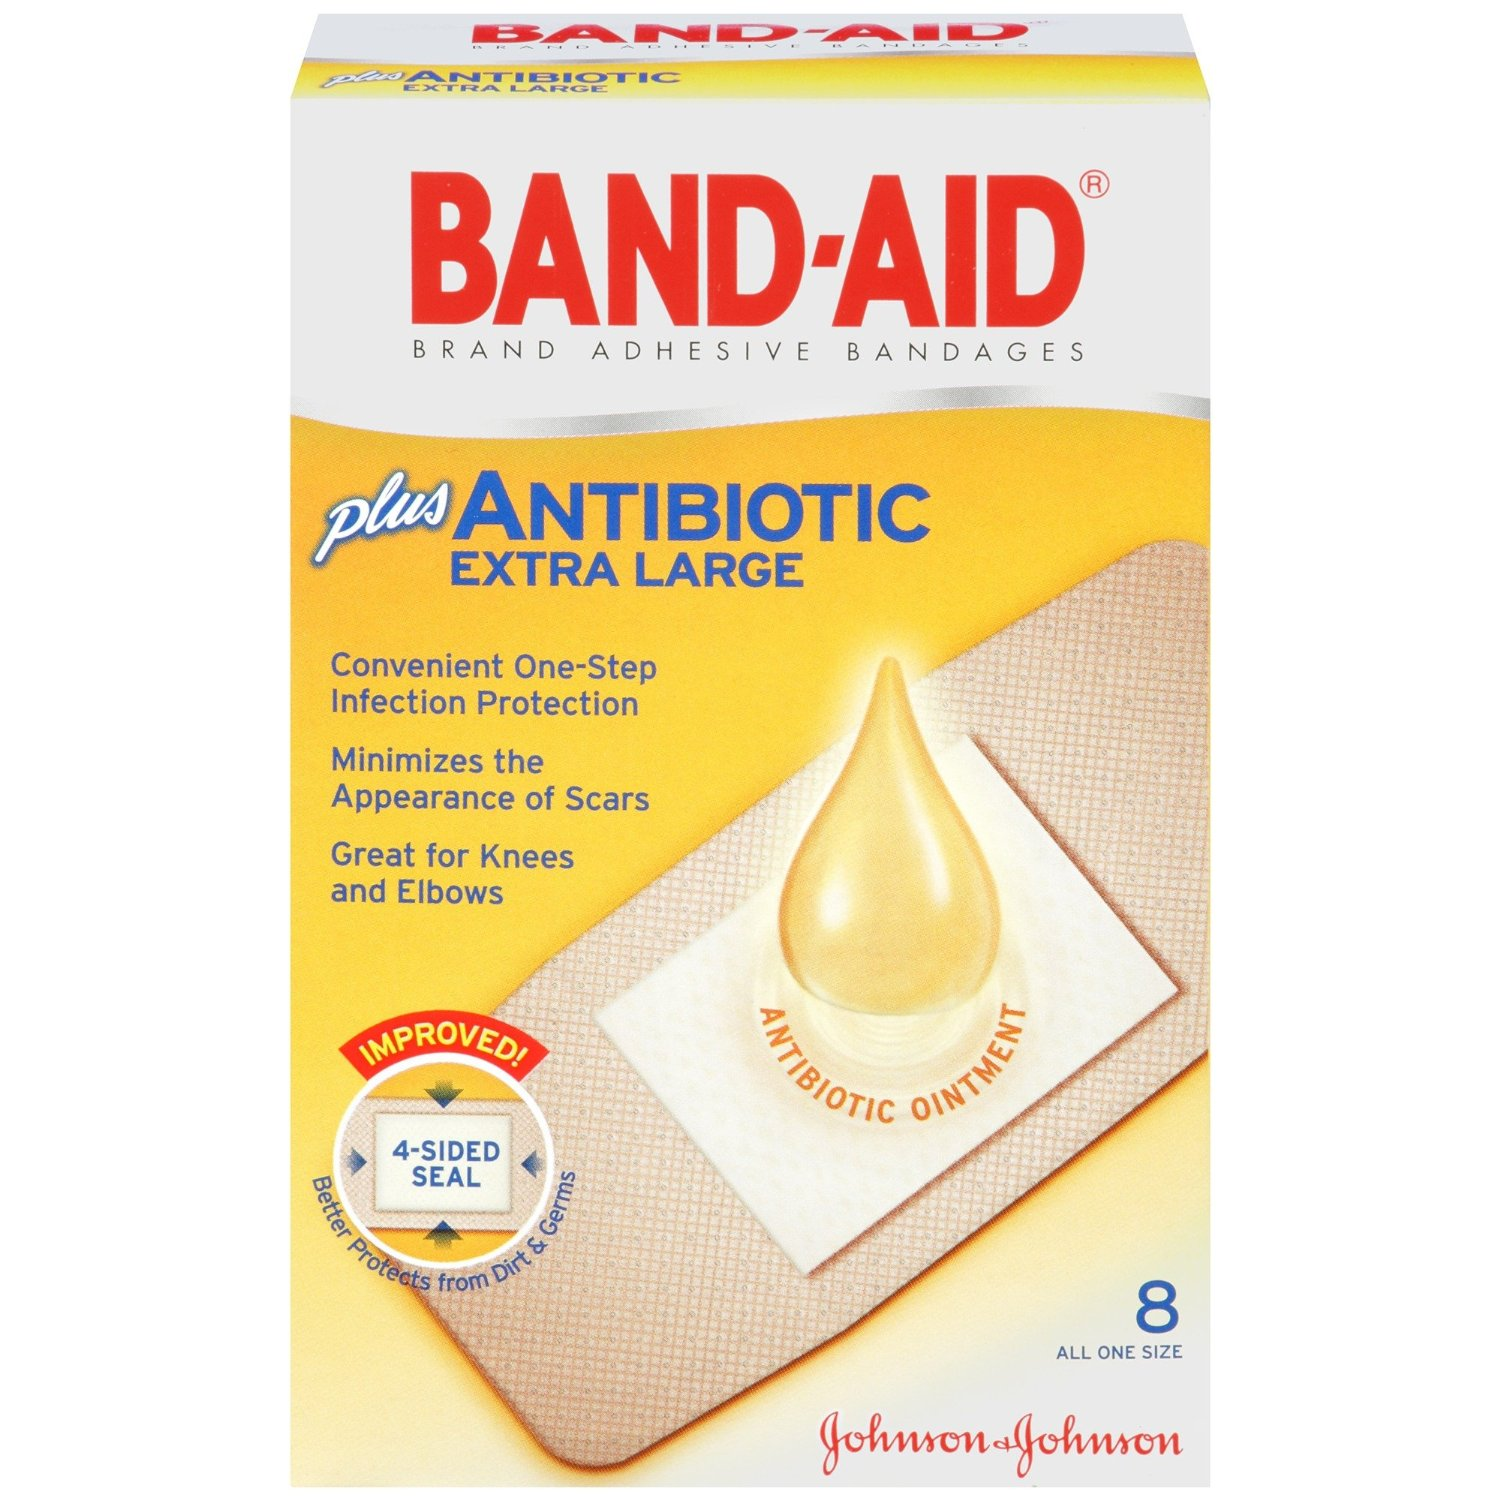 6 Pack Band-Aid Adhesive Bandages Plus Antibiotic Extra Large - 8 Count Ea